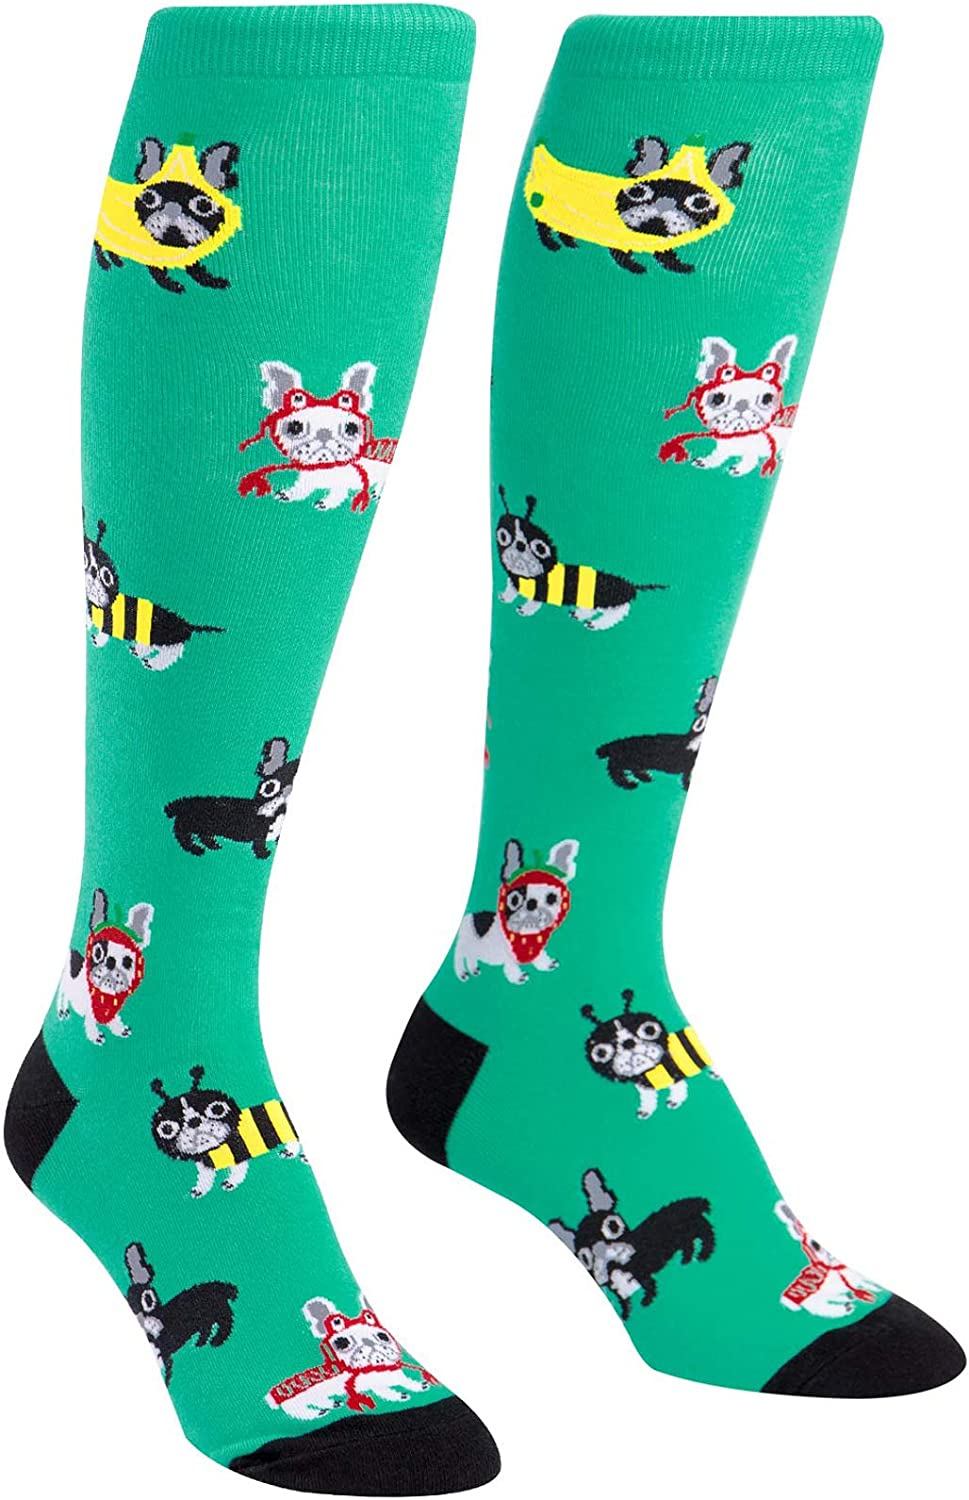 Sock It To Me Women's Funky Knee High Socks Pet Lovers, Dogs Costume Party